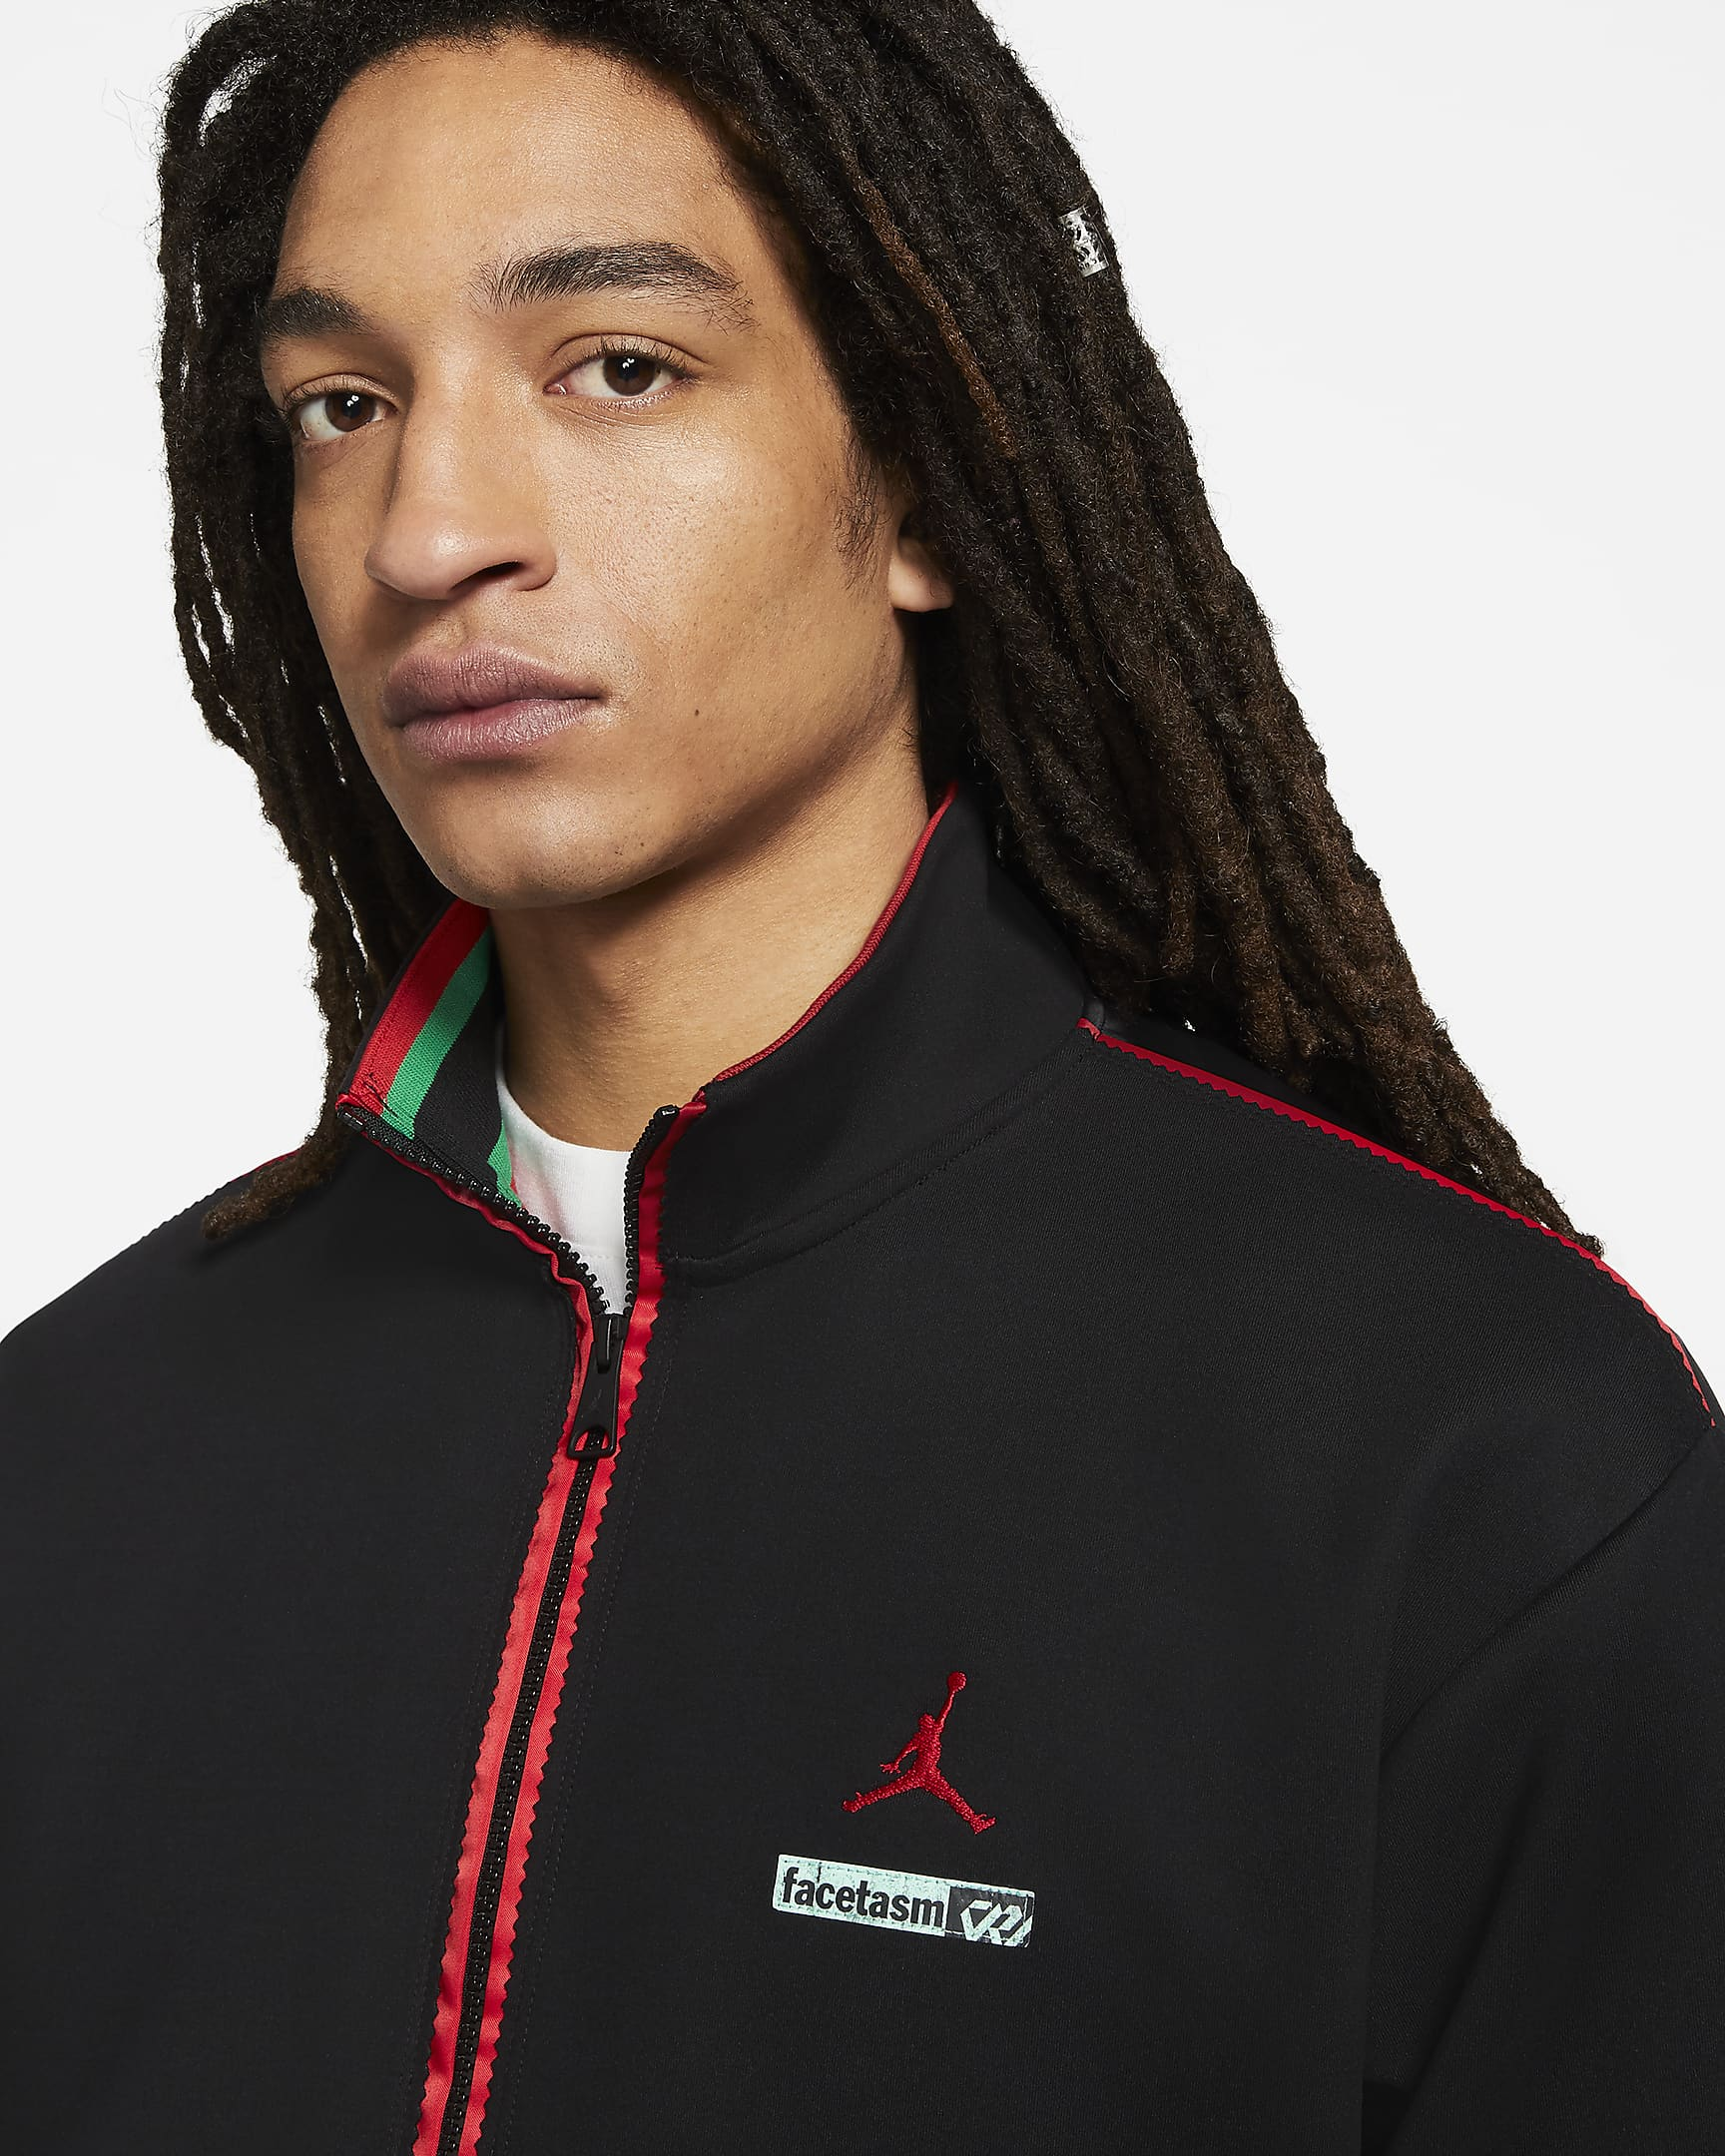 jordan-why-not-x-facetasm-mens-track-jacket-CmdpQ2-1